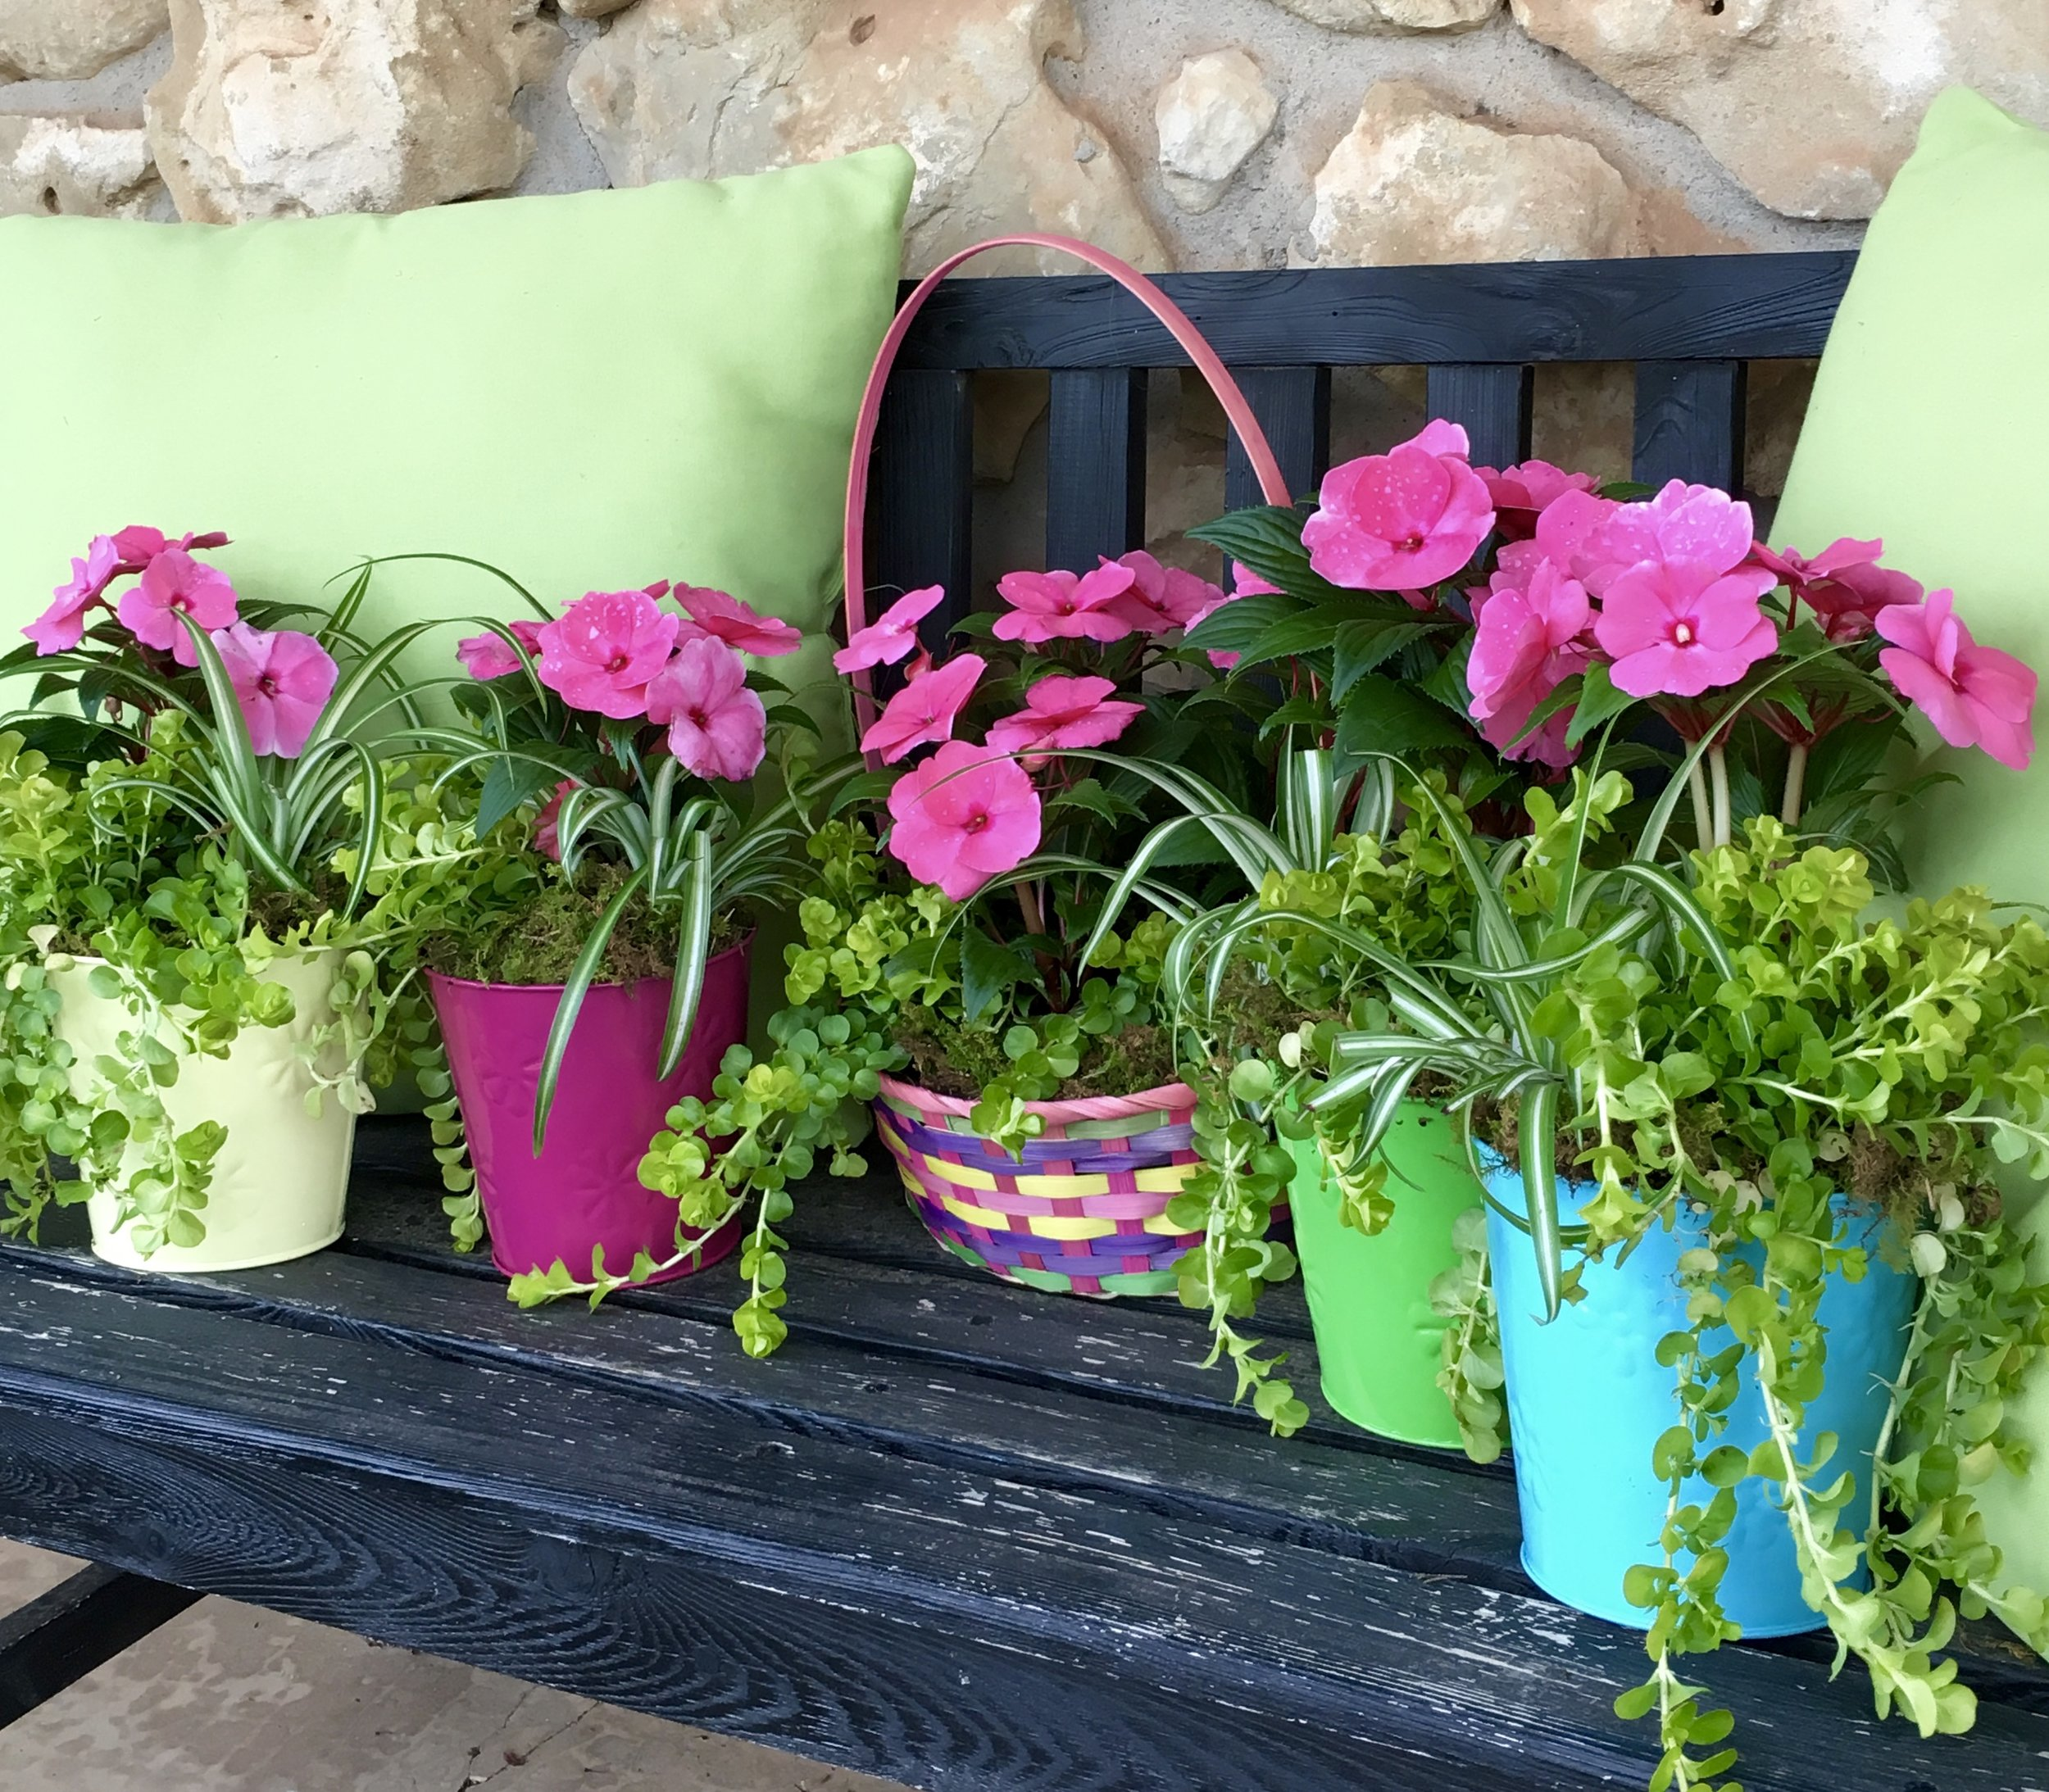 Darling spring centerpieces!   Do you need a pop of spring color for your entryway or outdoor table? We have super cute spring pots available for $15 and Easter baskets for $25. Perfect for your spring entertaining, hostess or teacher gifts.